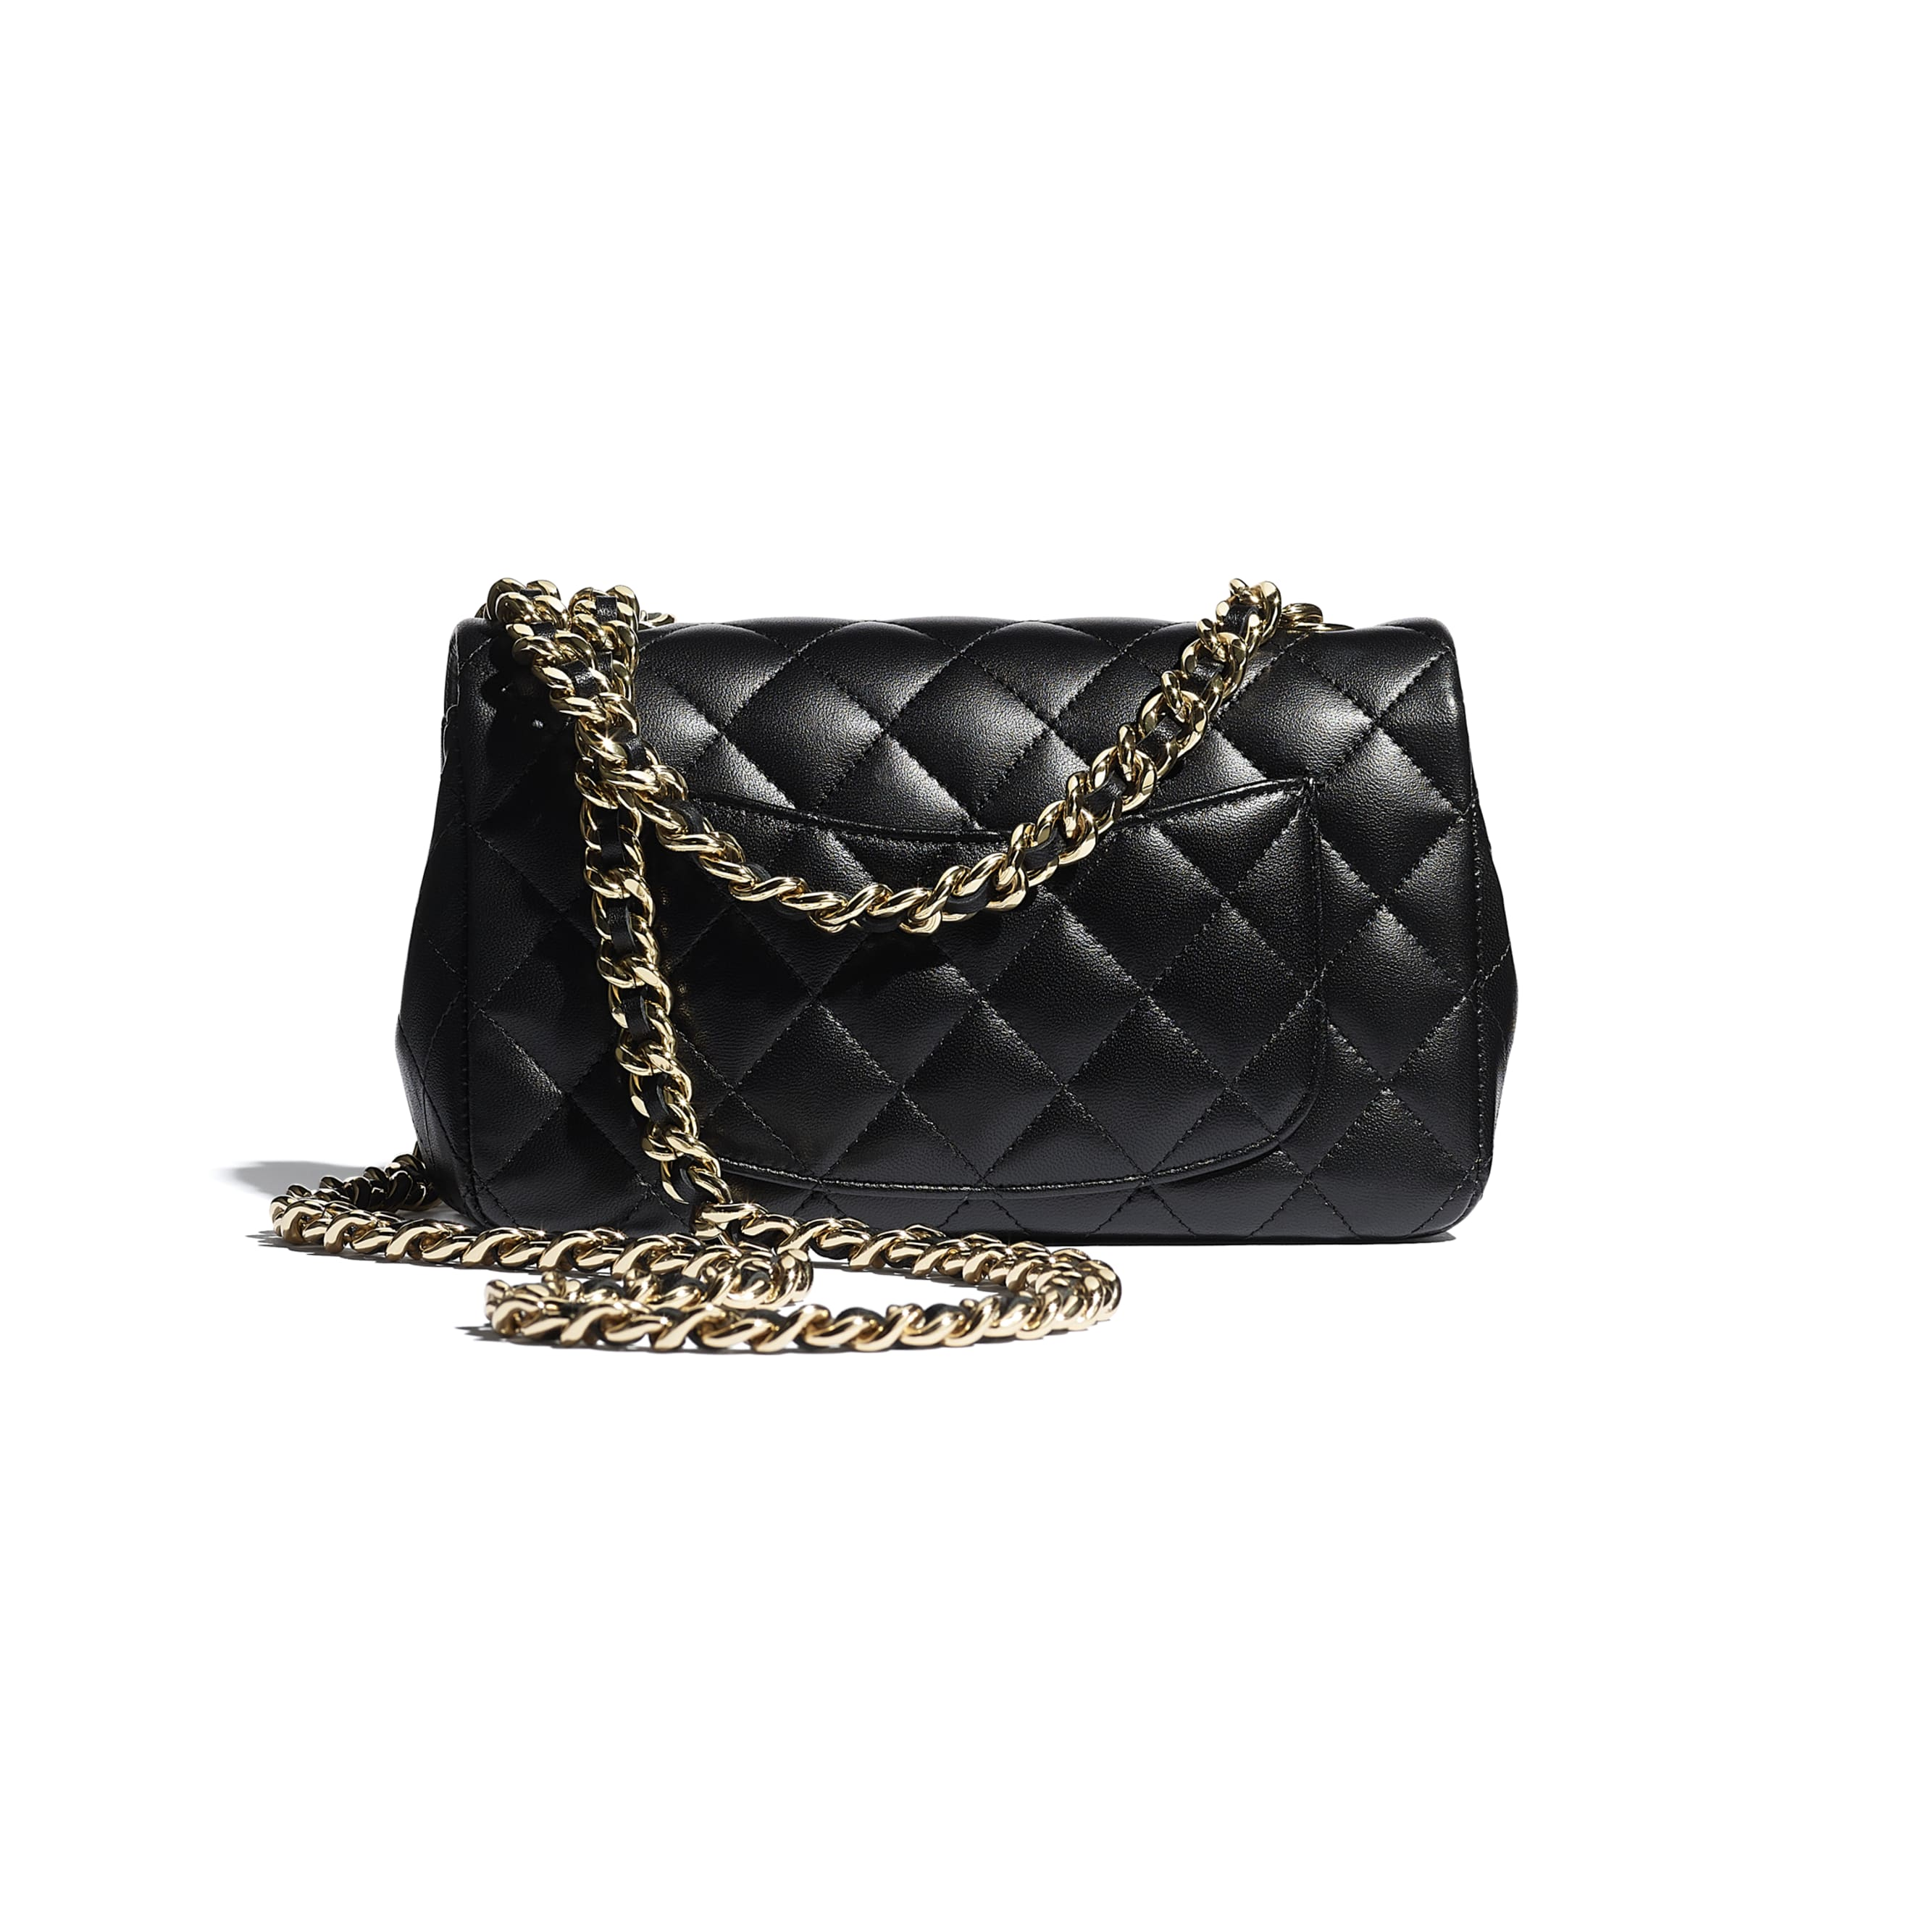 Flap Bag - Black - Lambskin - CHANEL - Alternative view - see standard sized version